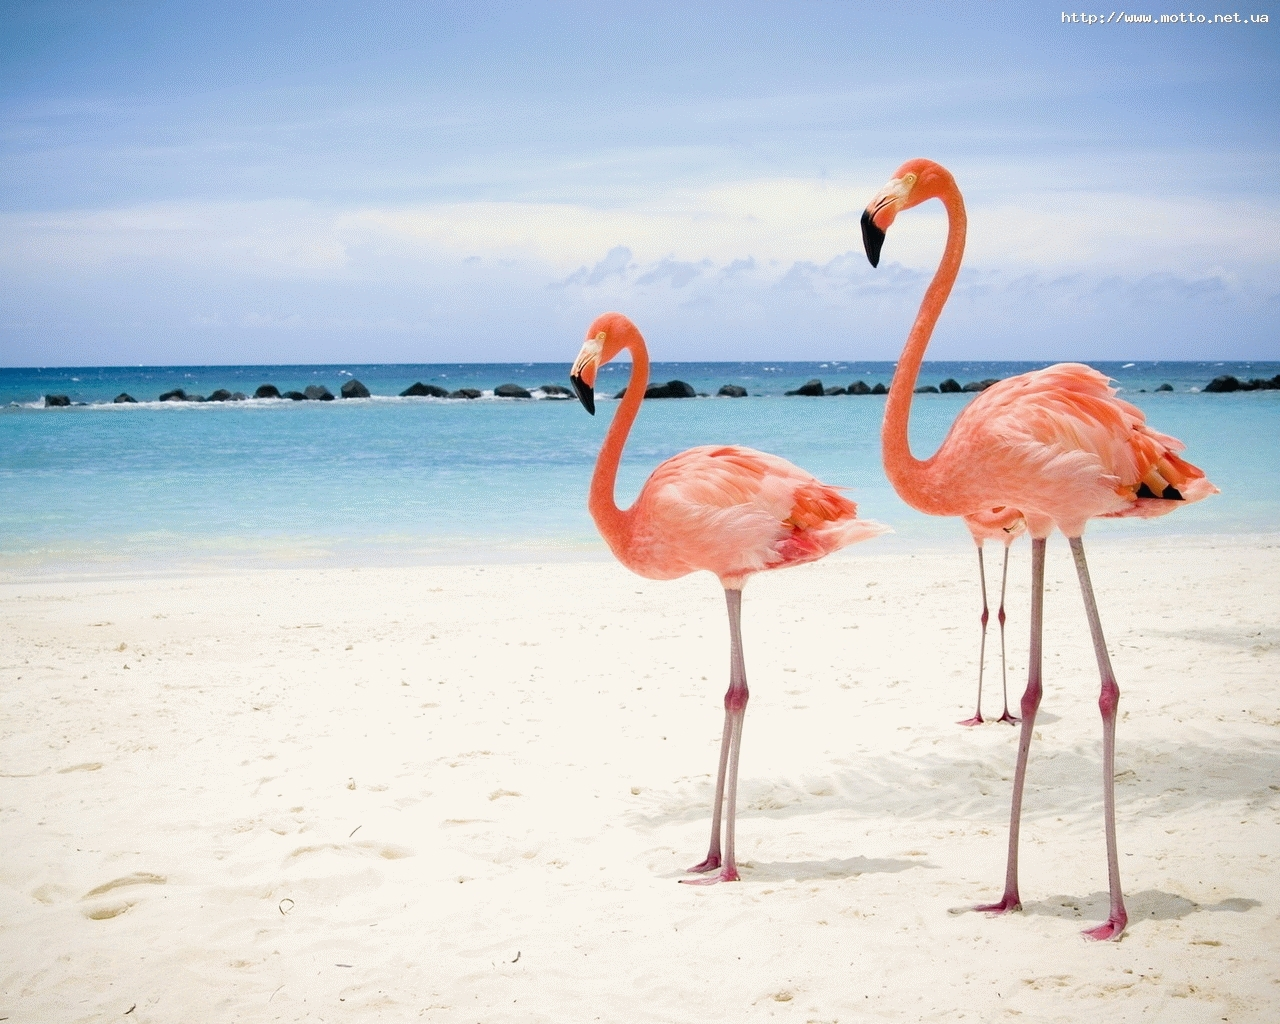 8197 download wallpaper Animals, Birds, Sky, Sea, Beach, Flamingo screensavers and pictures for free